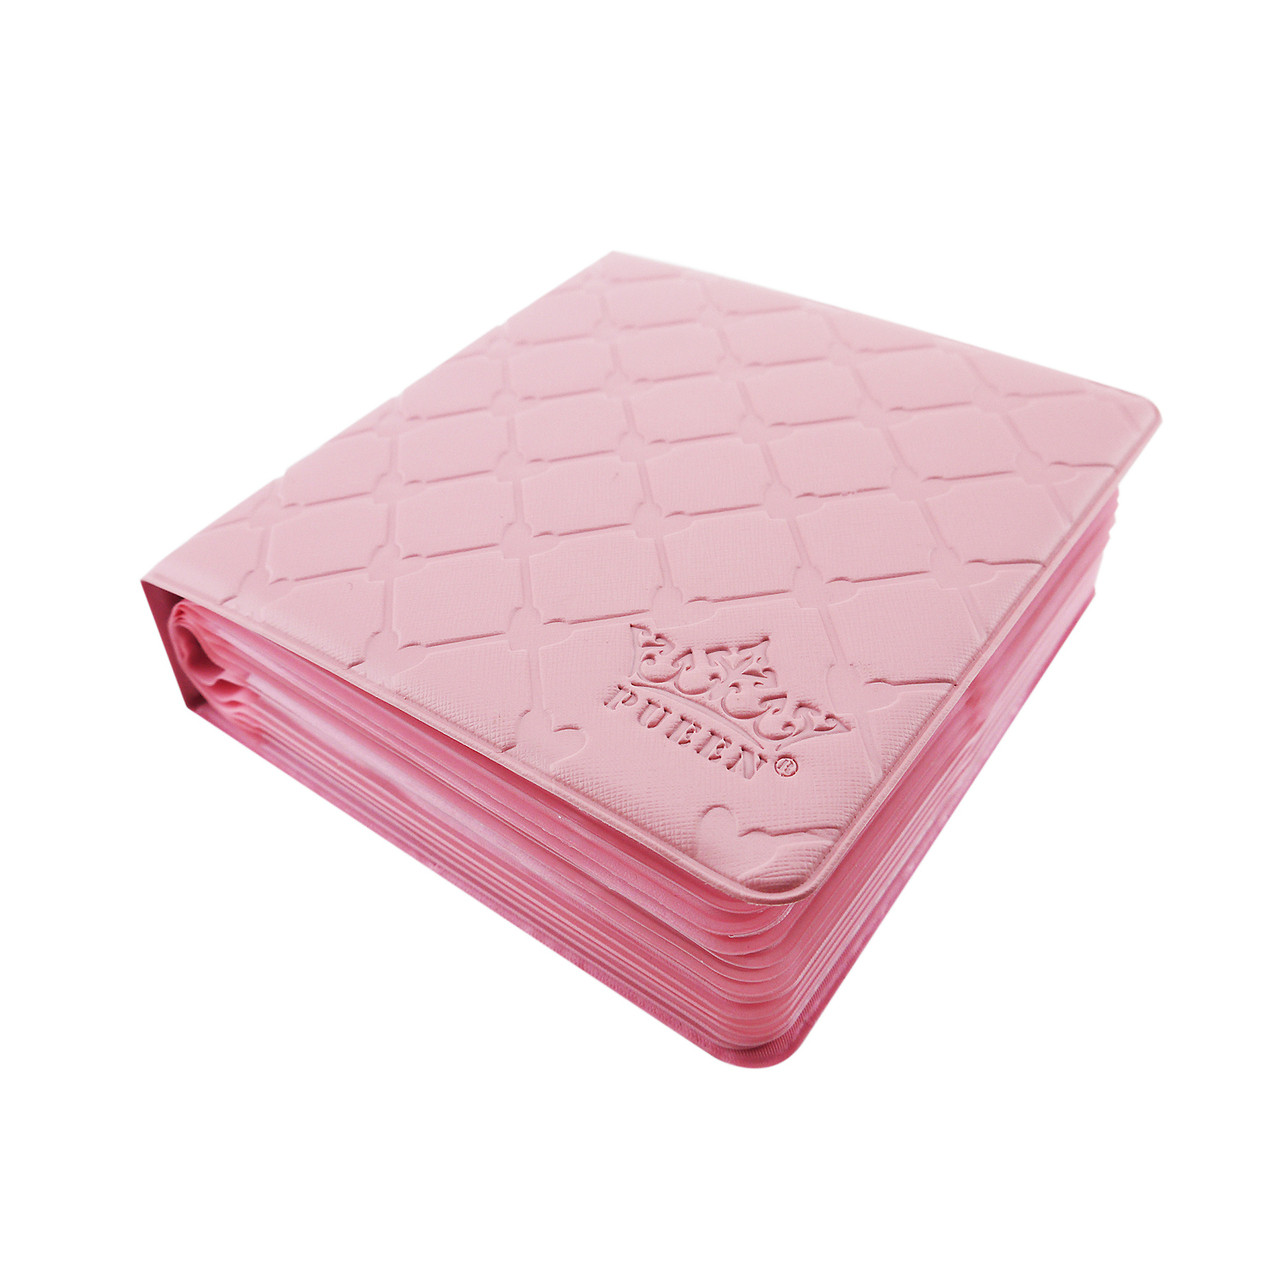 40 St&ing Plates Holder - Soft Pink  sc 1 st  Pueen & 40 Stamping Plates Holder - Soft Pink - www.pueen.com